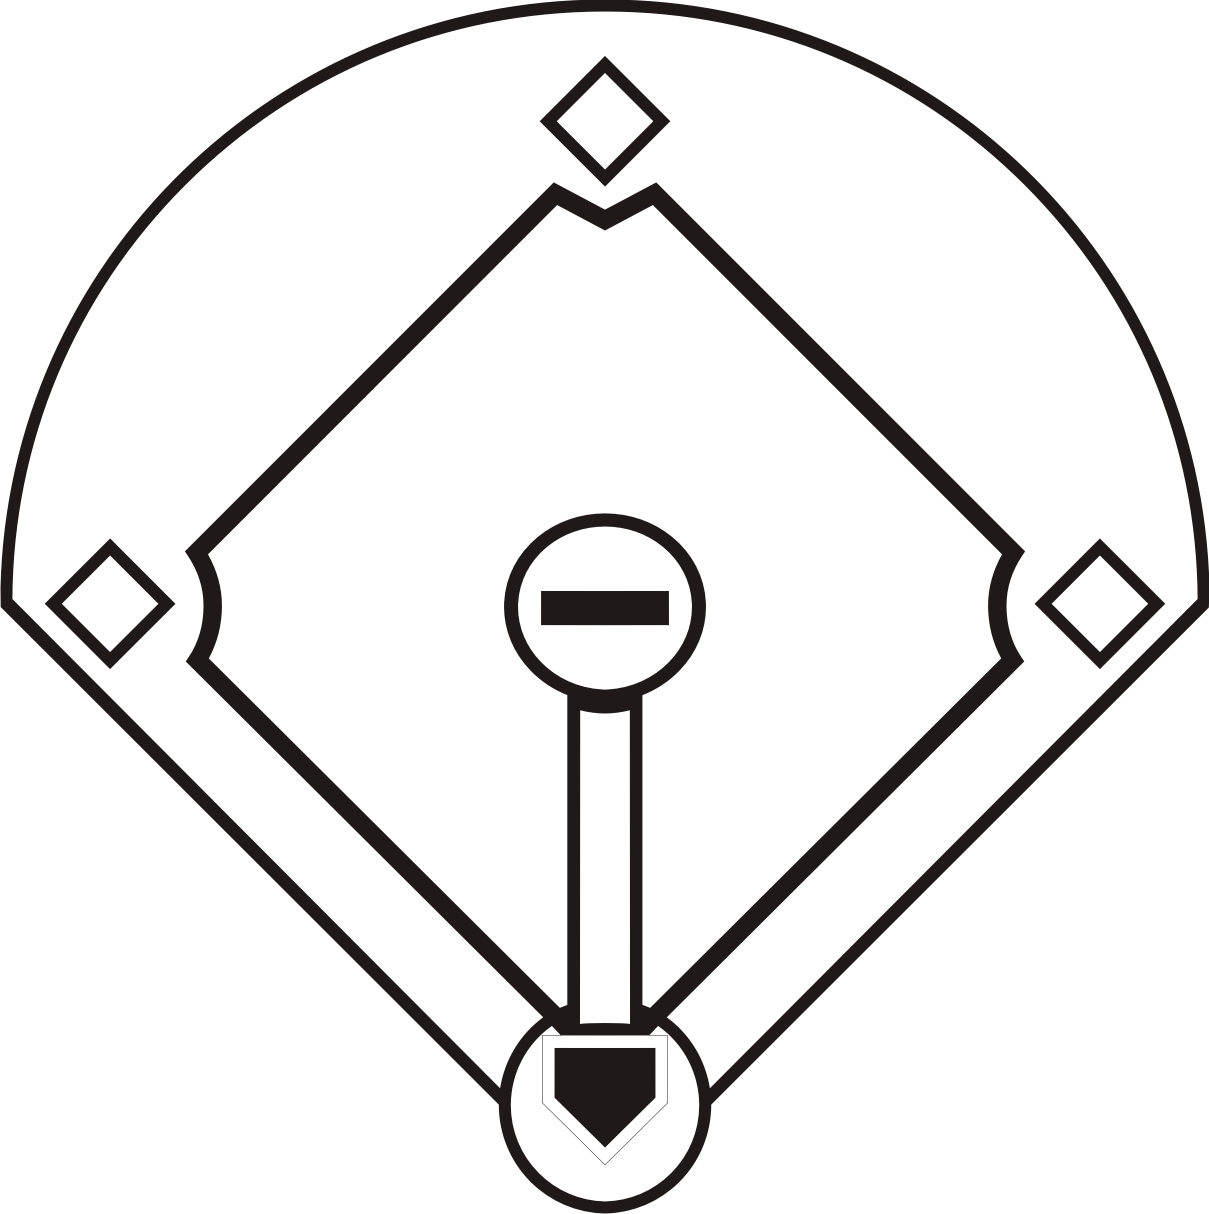 png library download Baseball diamond clipart black and white. Free download clip